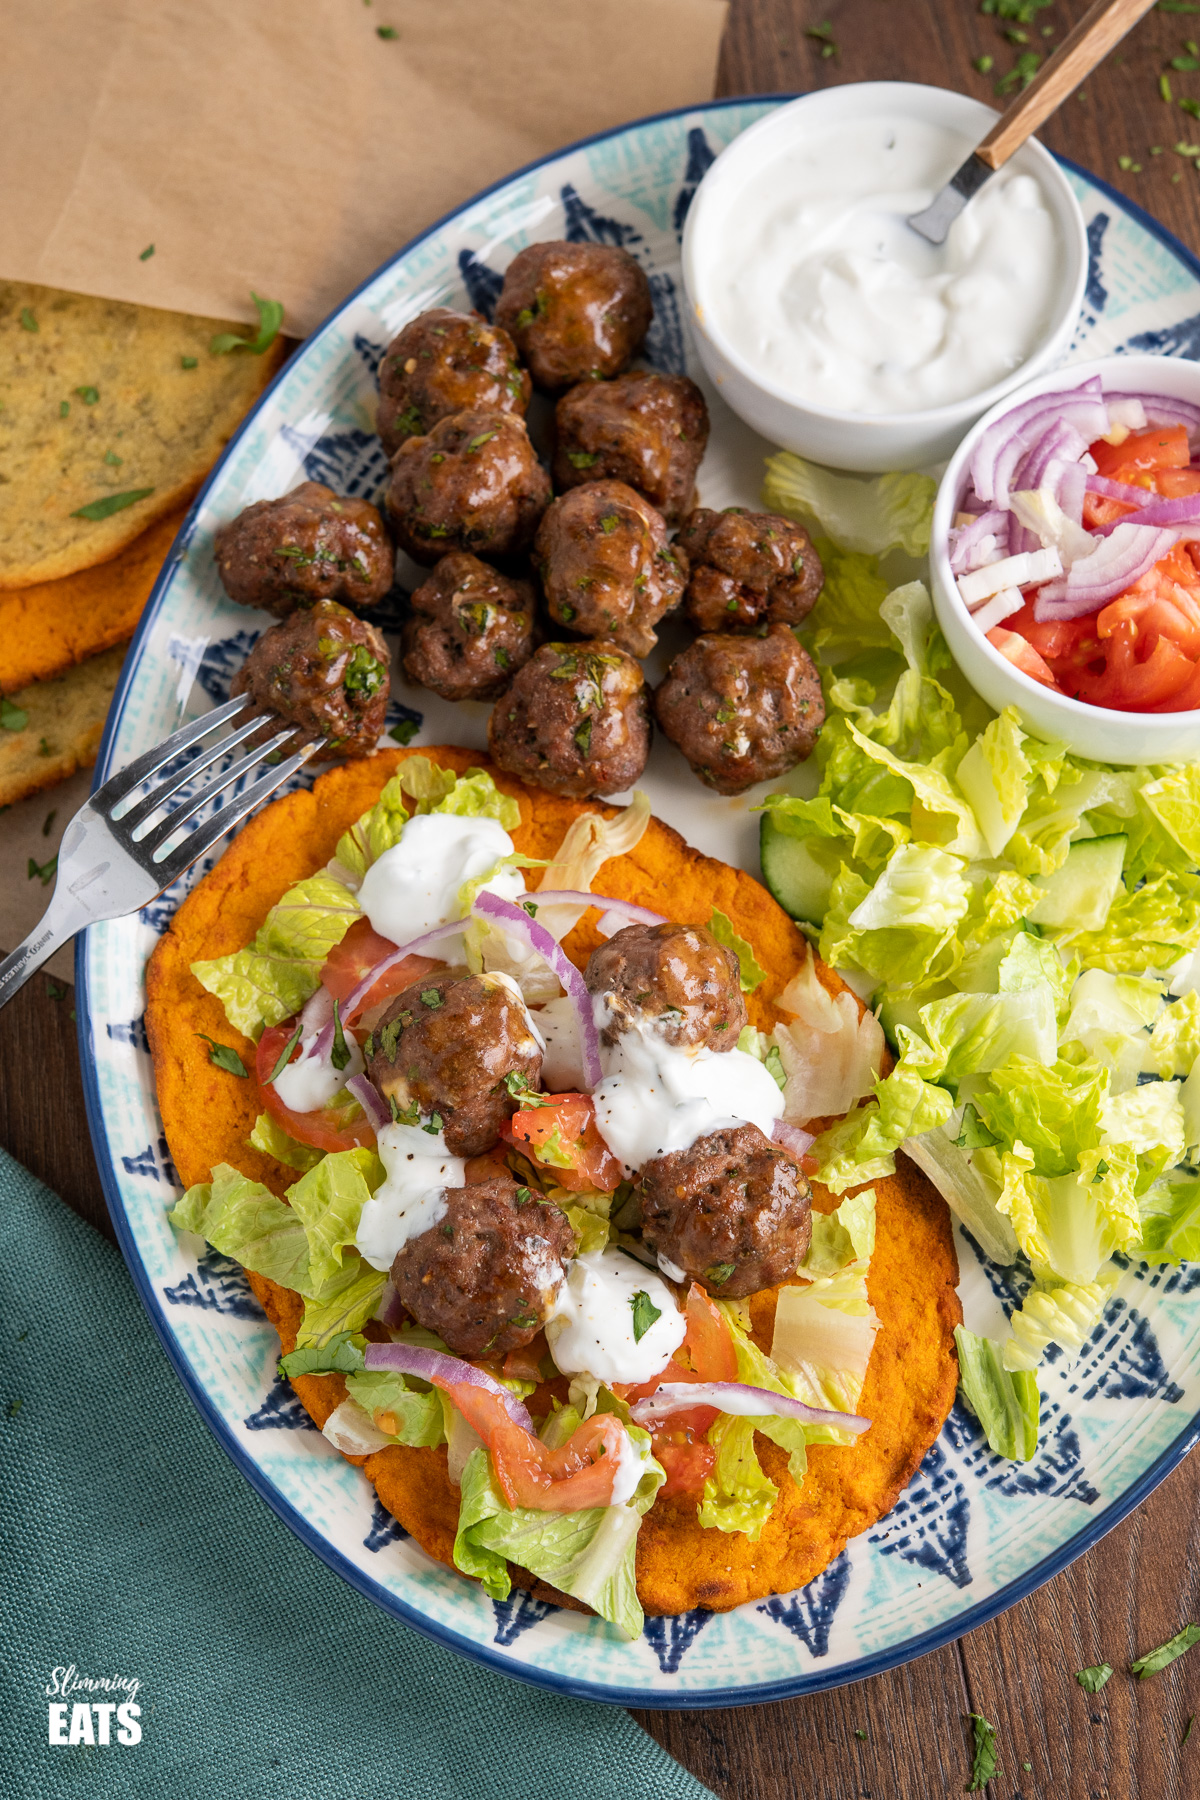 lamb kofta with sweet potato flatbread on oval patterned plate with salad and tzatziki